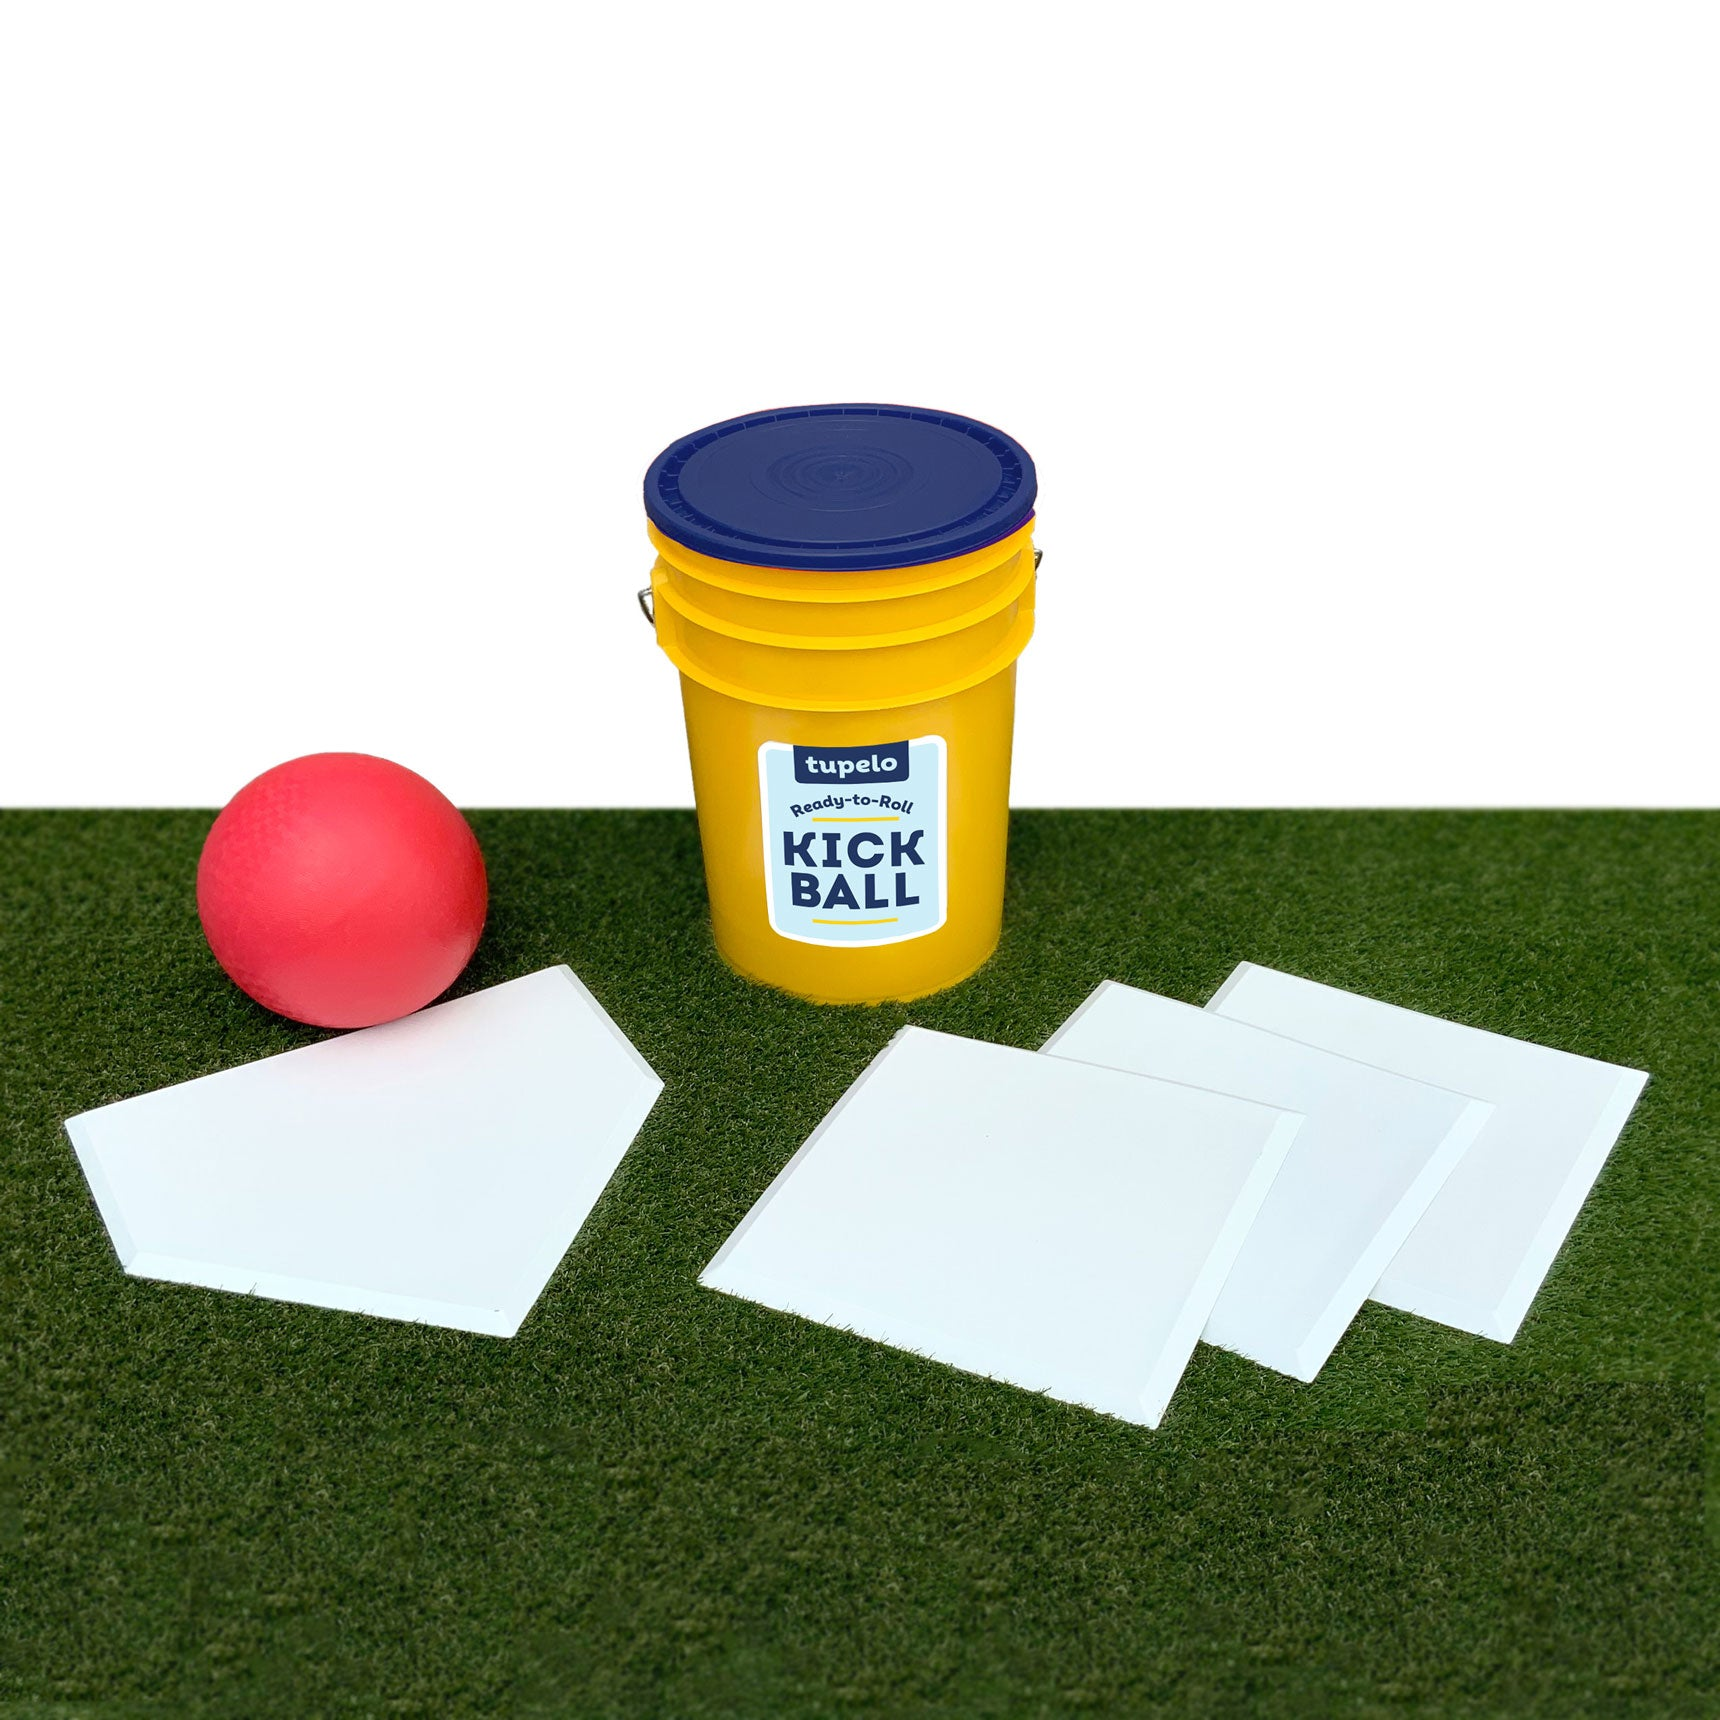 Tupelo Kickball Set includes heavy-duty throw down bases, home plate, a WACA ball, and a storage-friendly bucket